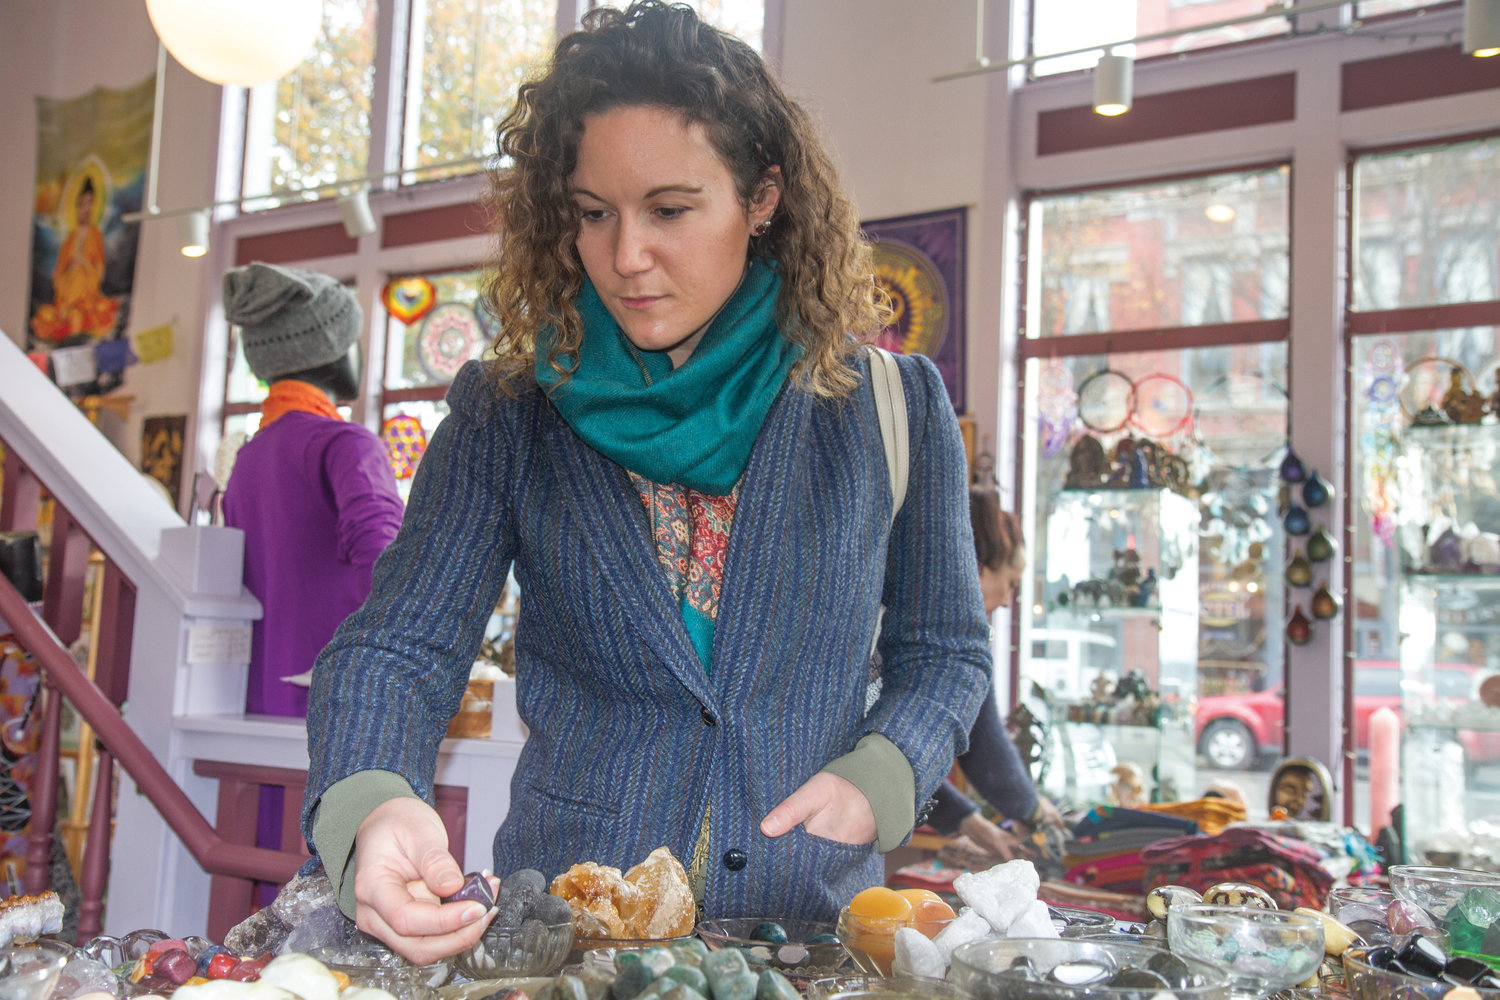 Lauren Anderson-Smith of Seattle picks through the stones offered at Phoenix Rising during a day trip to Port Townsend on Nov. 28.